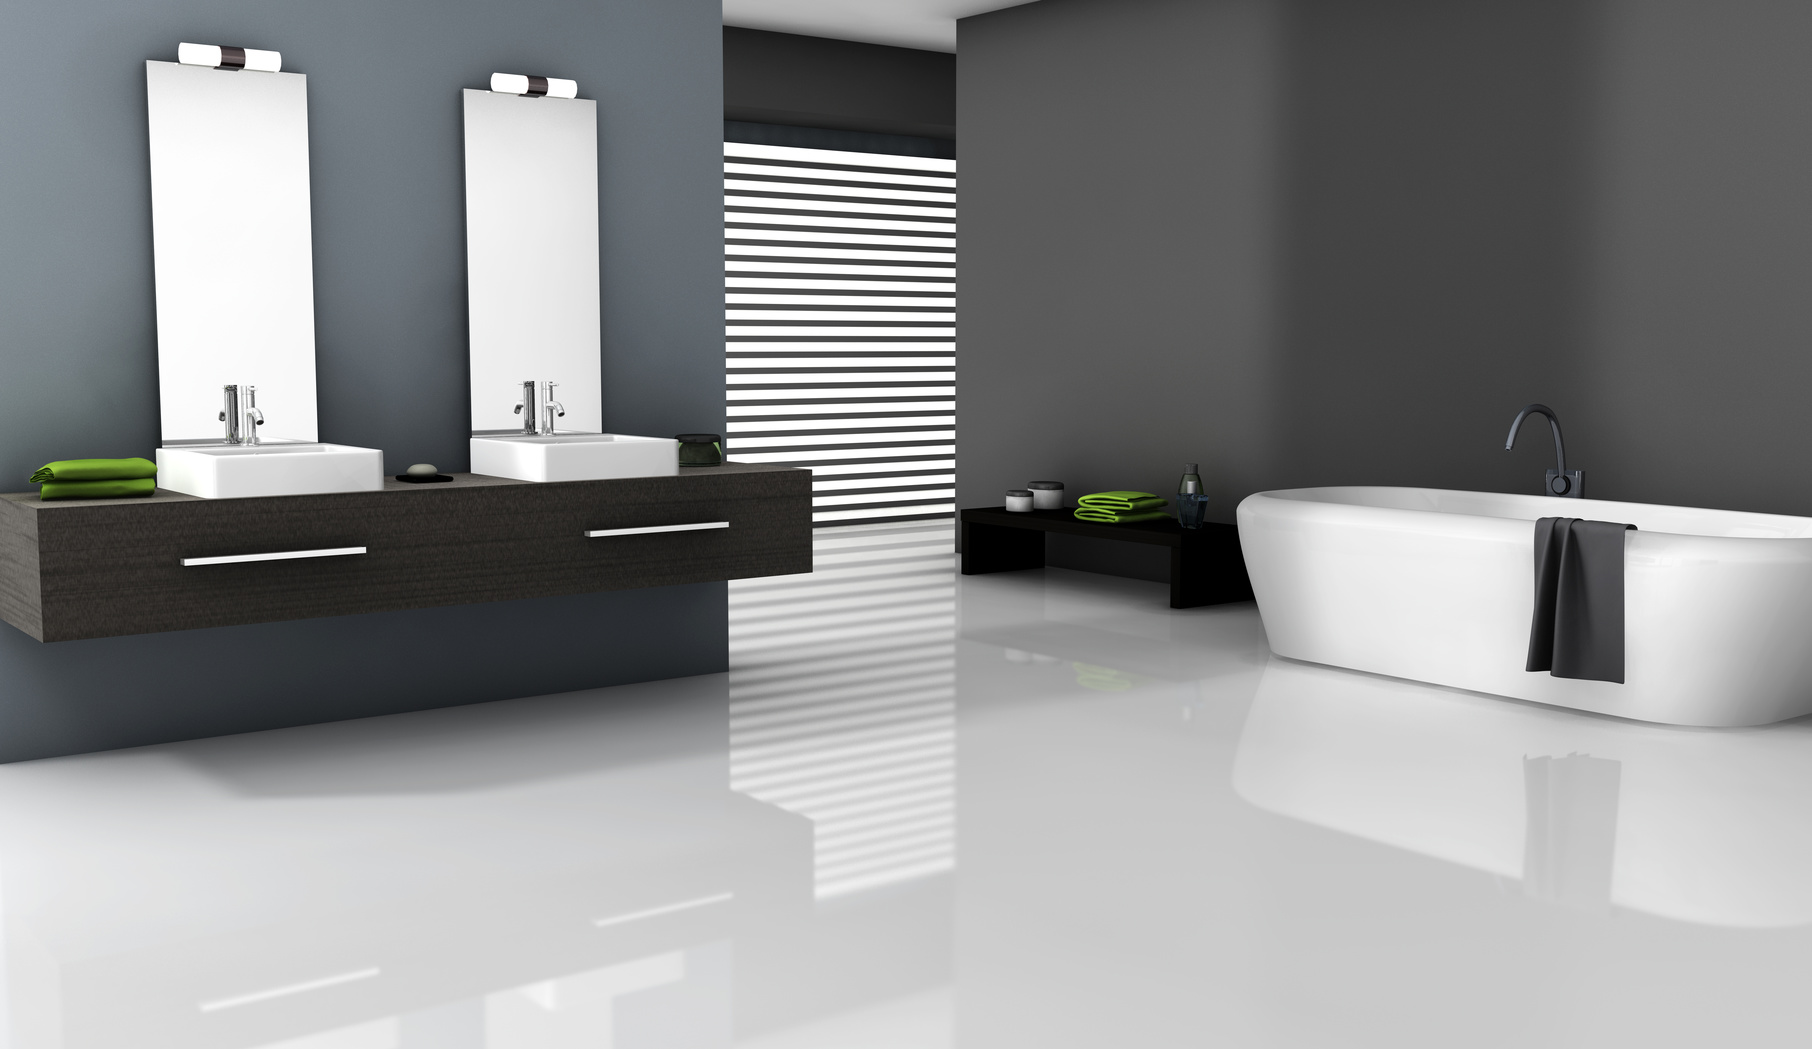 Home interior of a contemporary bathroom with modern design and furniture, 3d rendering.